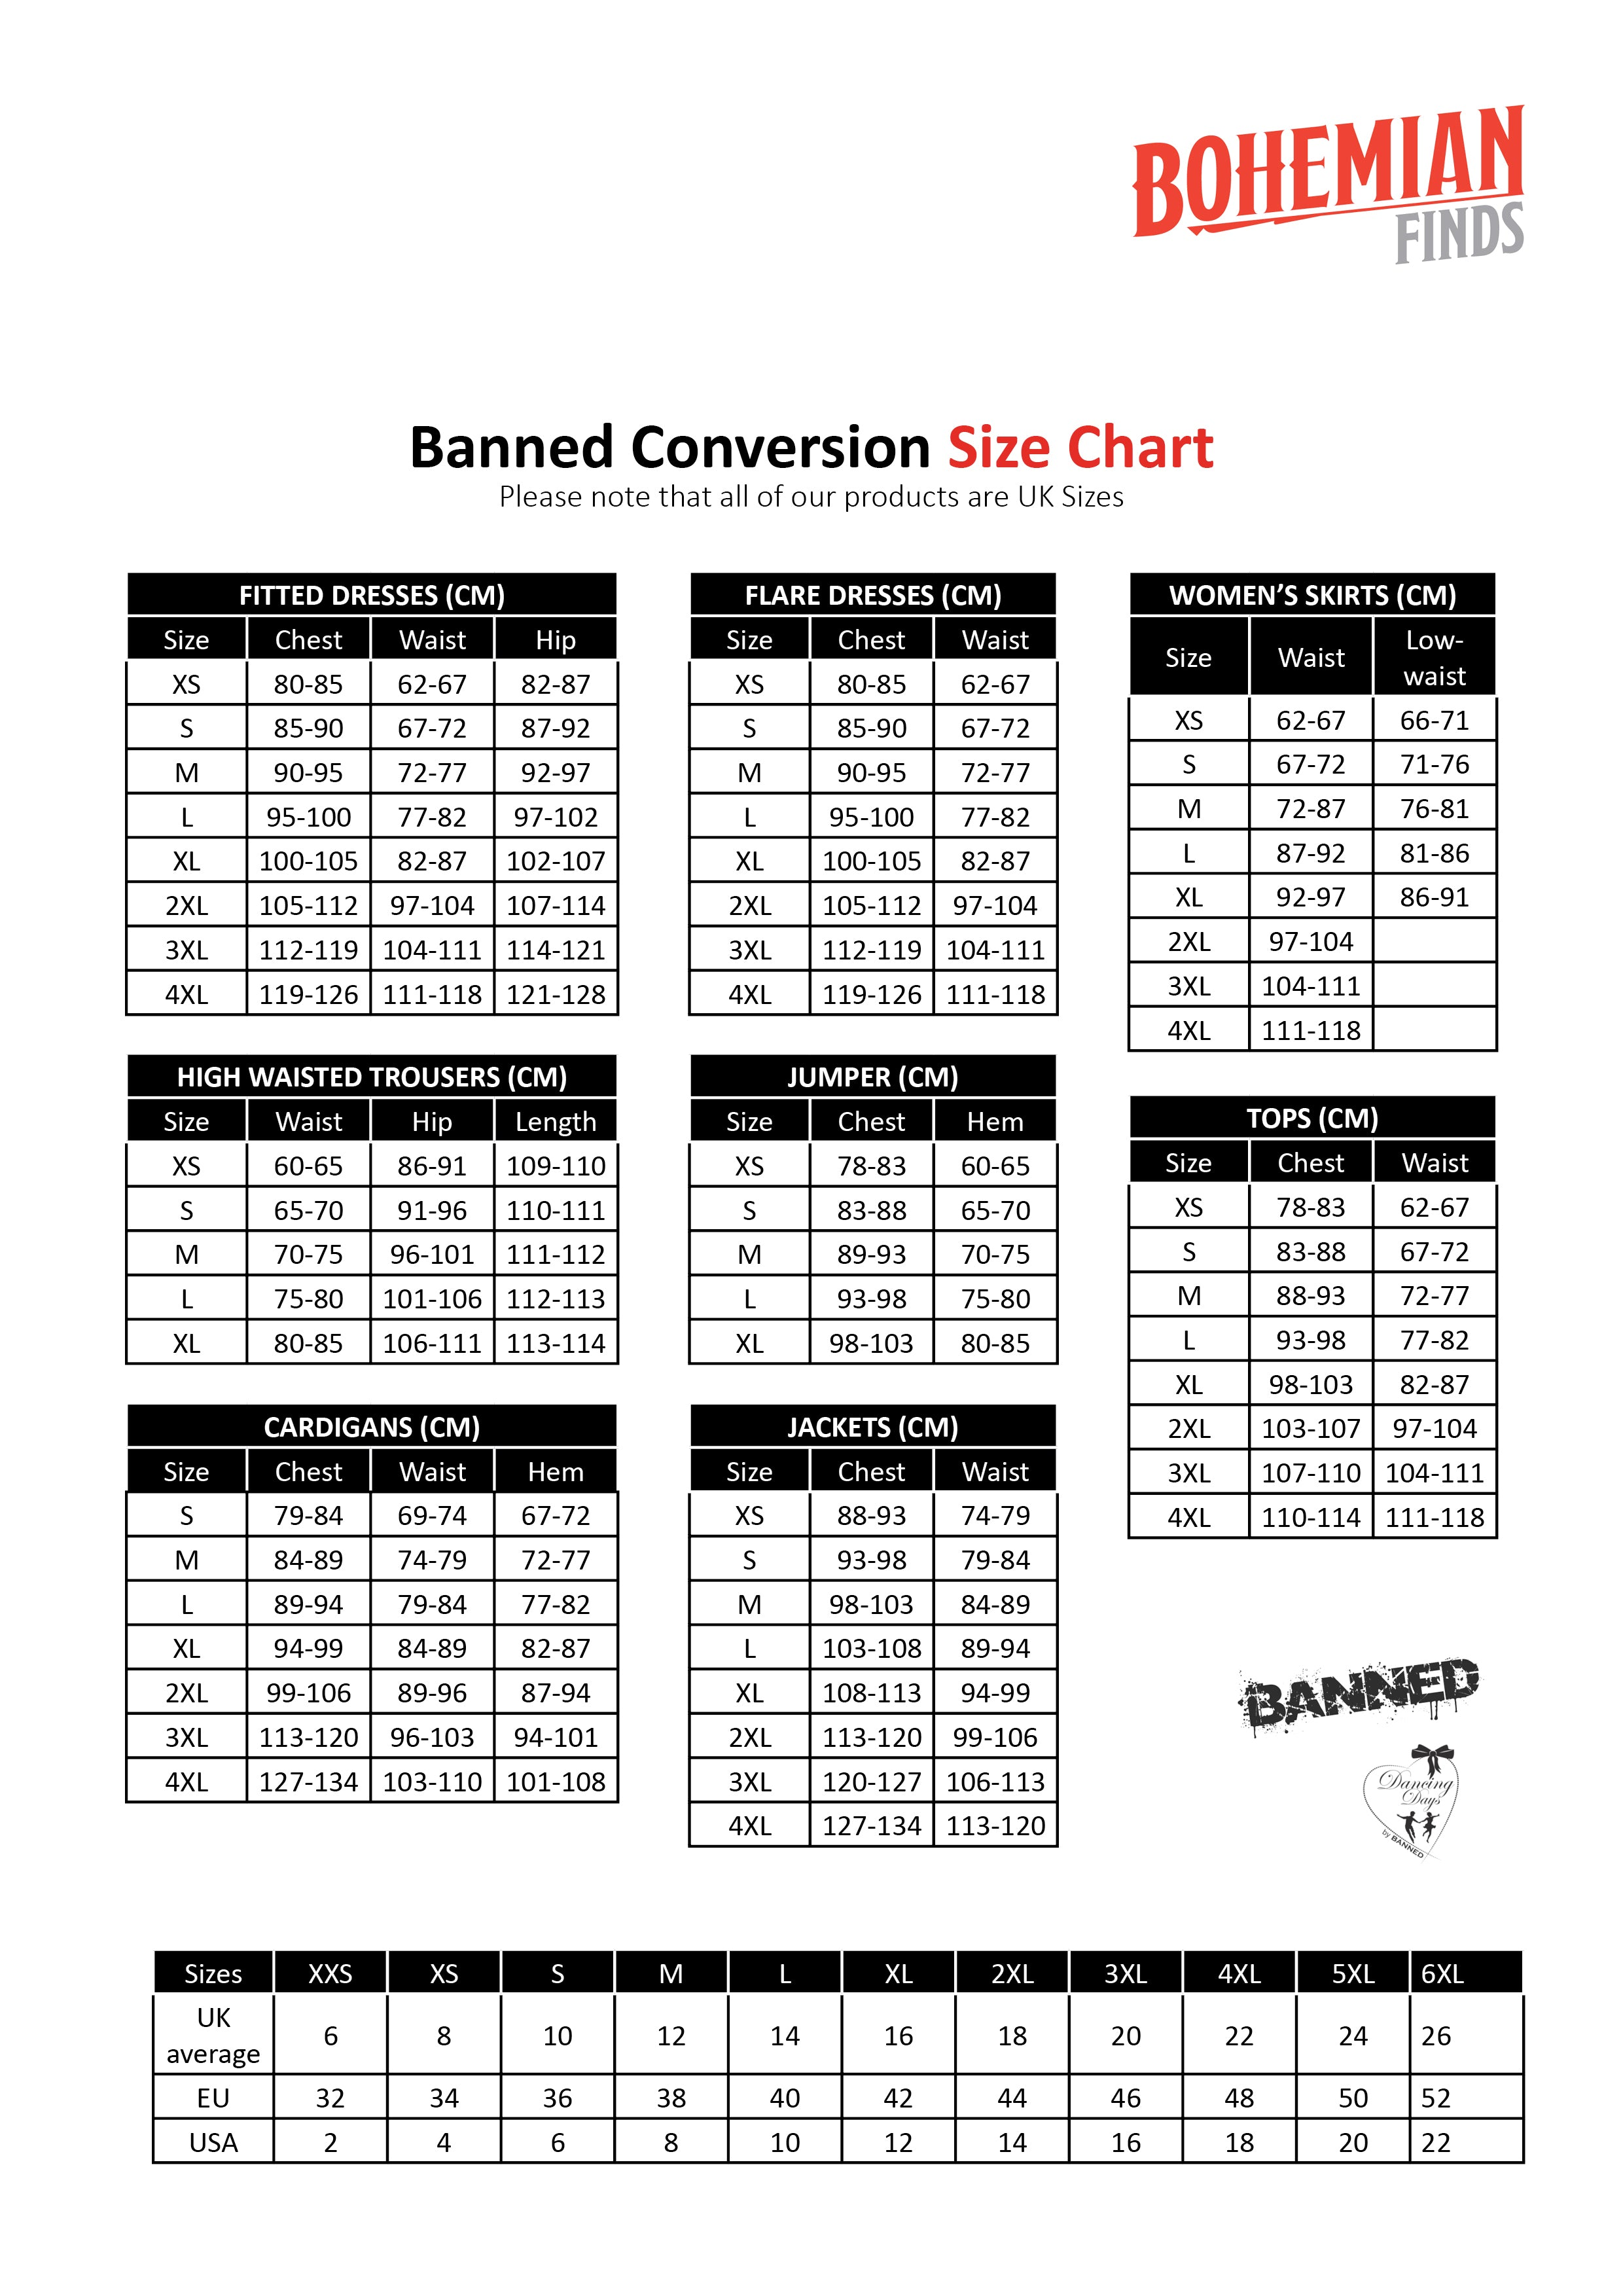 Banned Apparel Size Guide